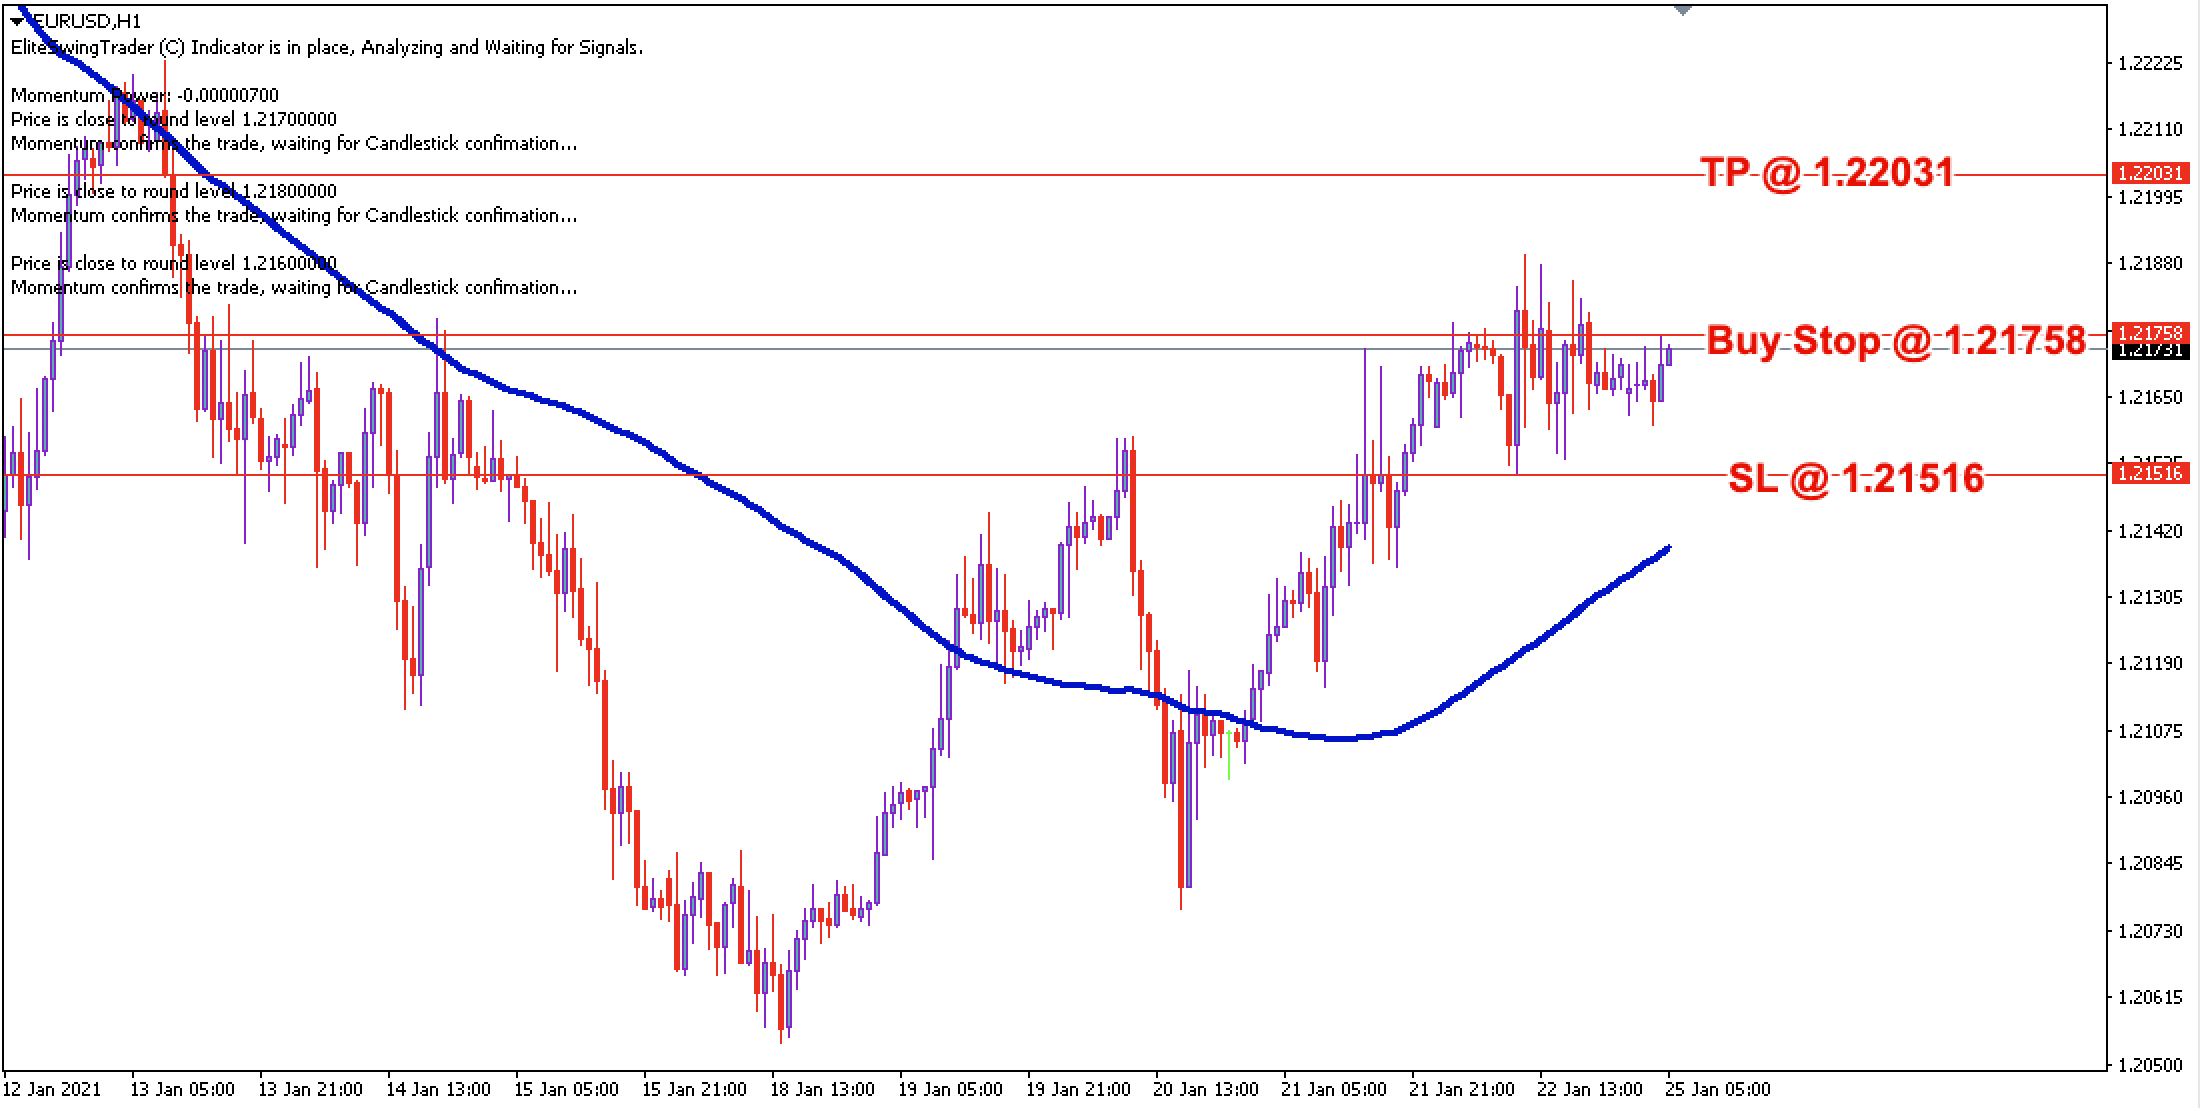 EUR/USD Daily Price Forecast - 25th Jan 2021